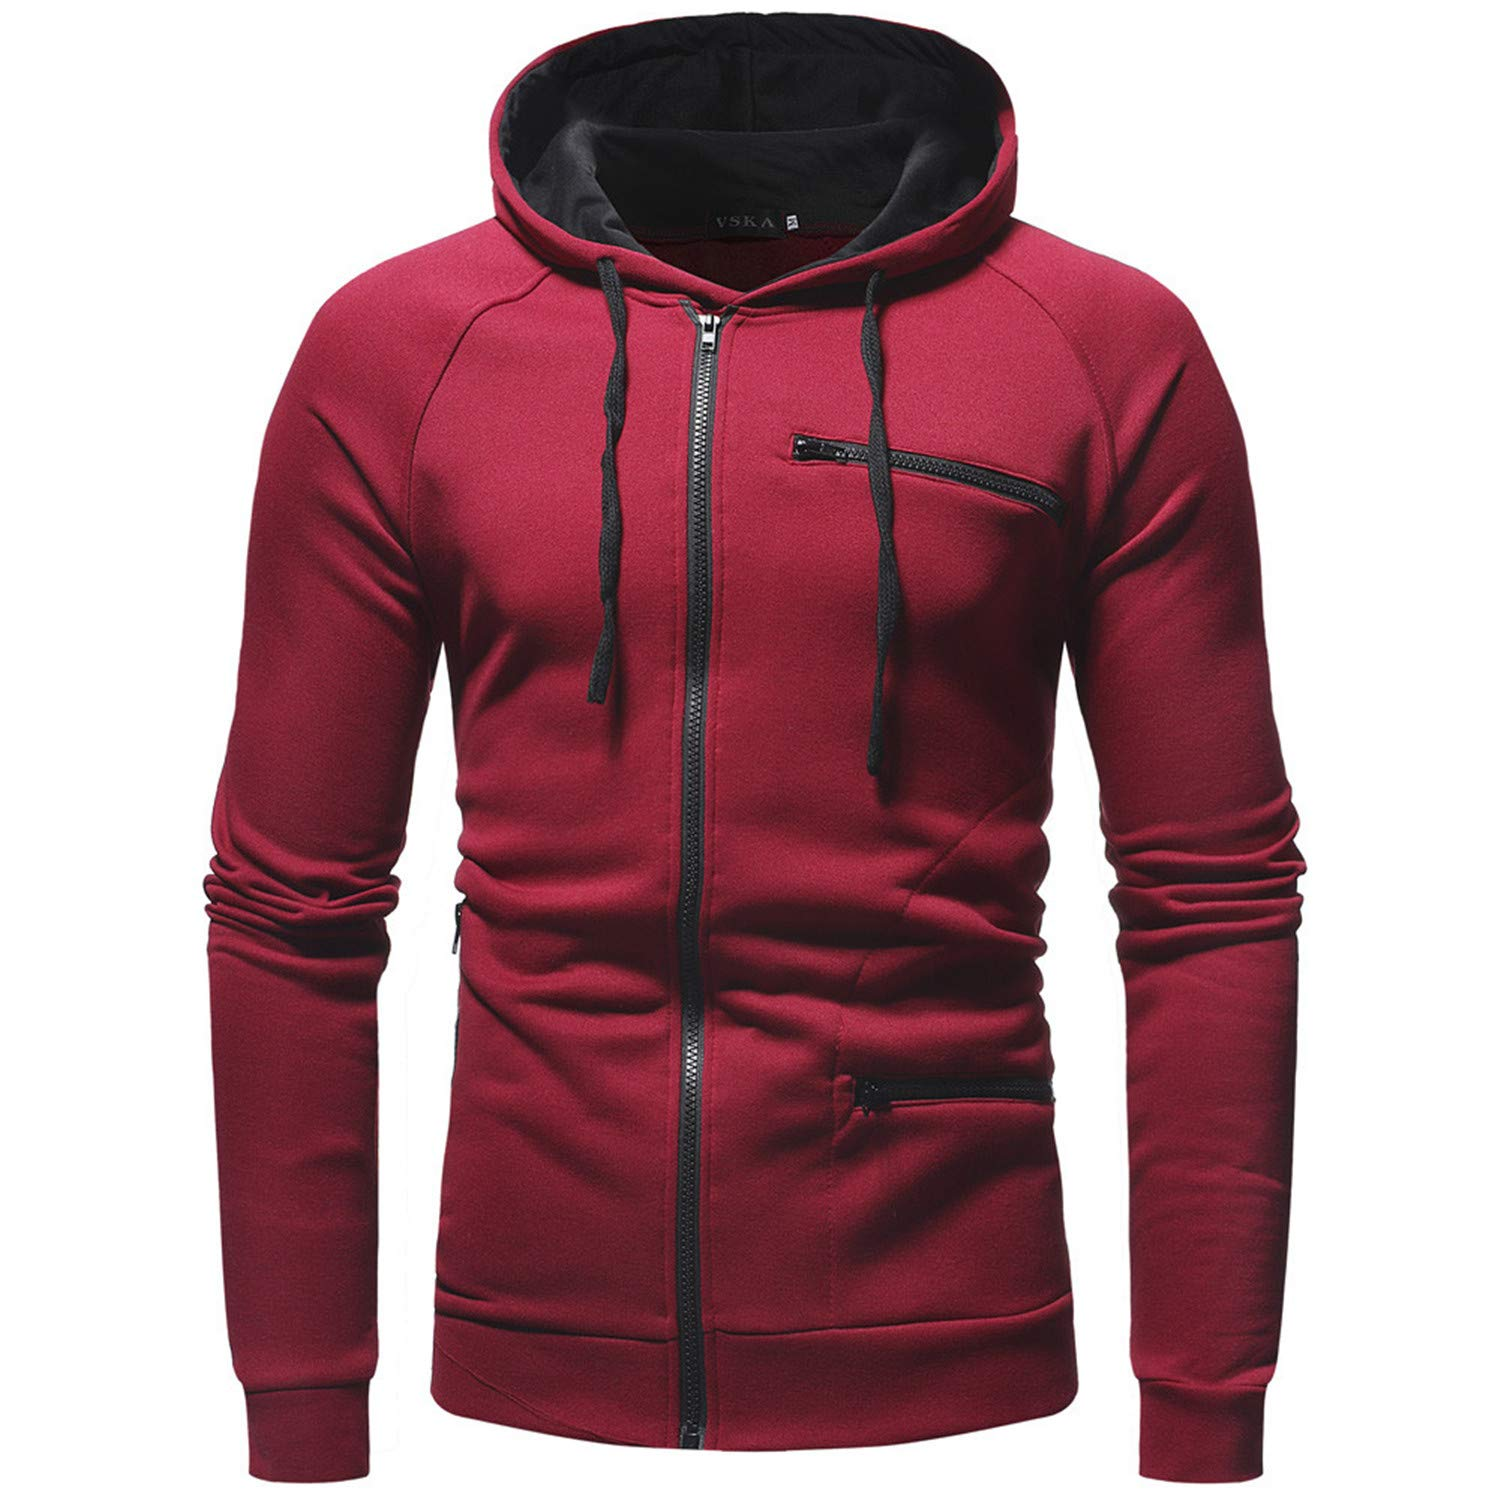 SincerityS Shirts Men Hoodies Sweatshirts Mens Hoodie with Zipper Long Sleeve at Amazon Mens Clothing store: